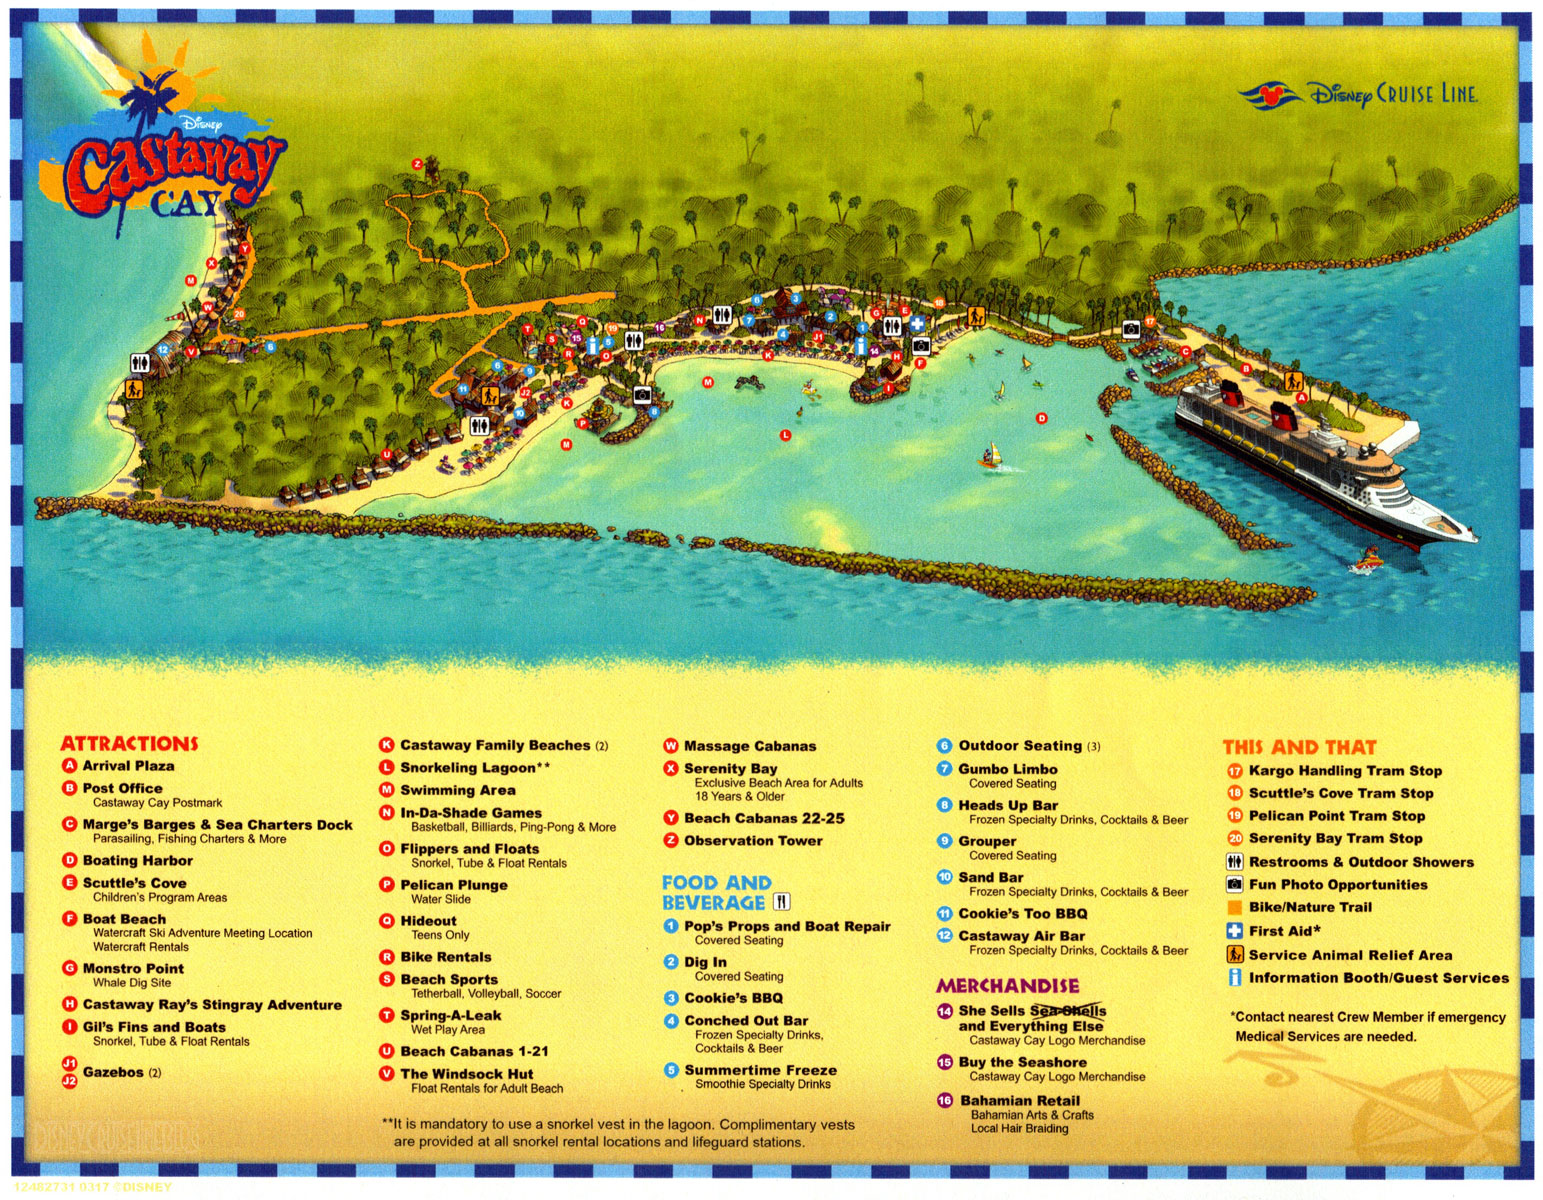 Castaway Cay Map Castaway Cay Information • The Disney Cruise Line Blog